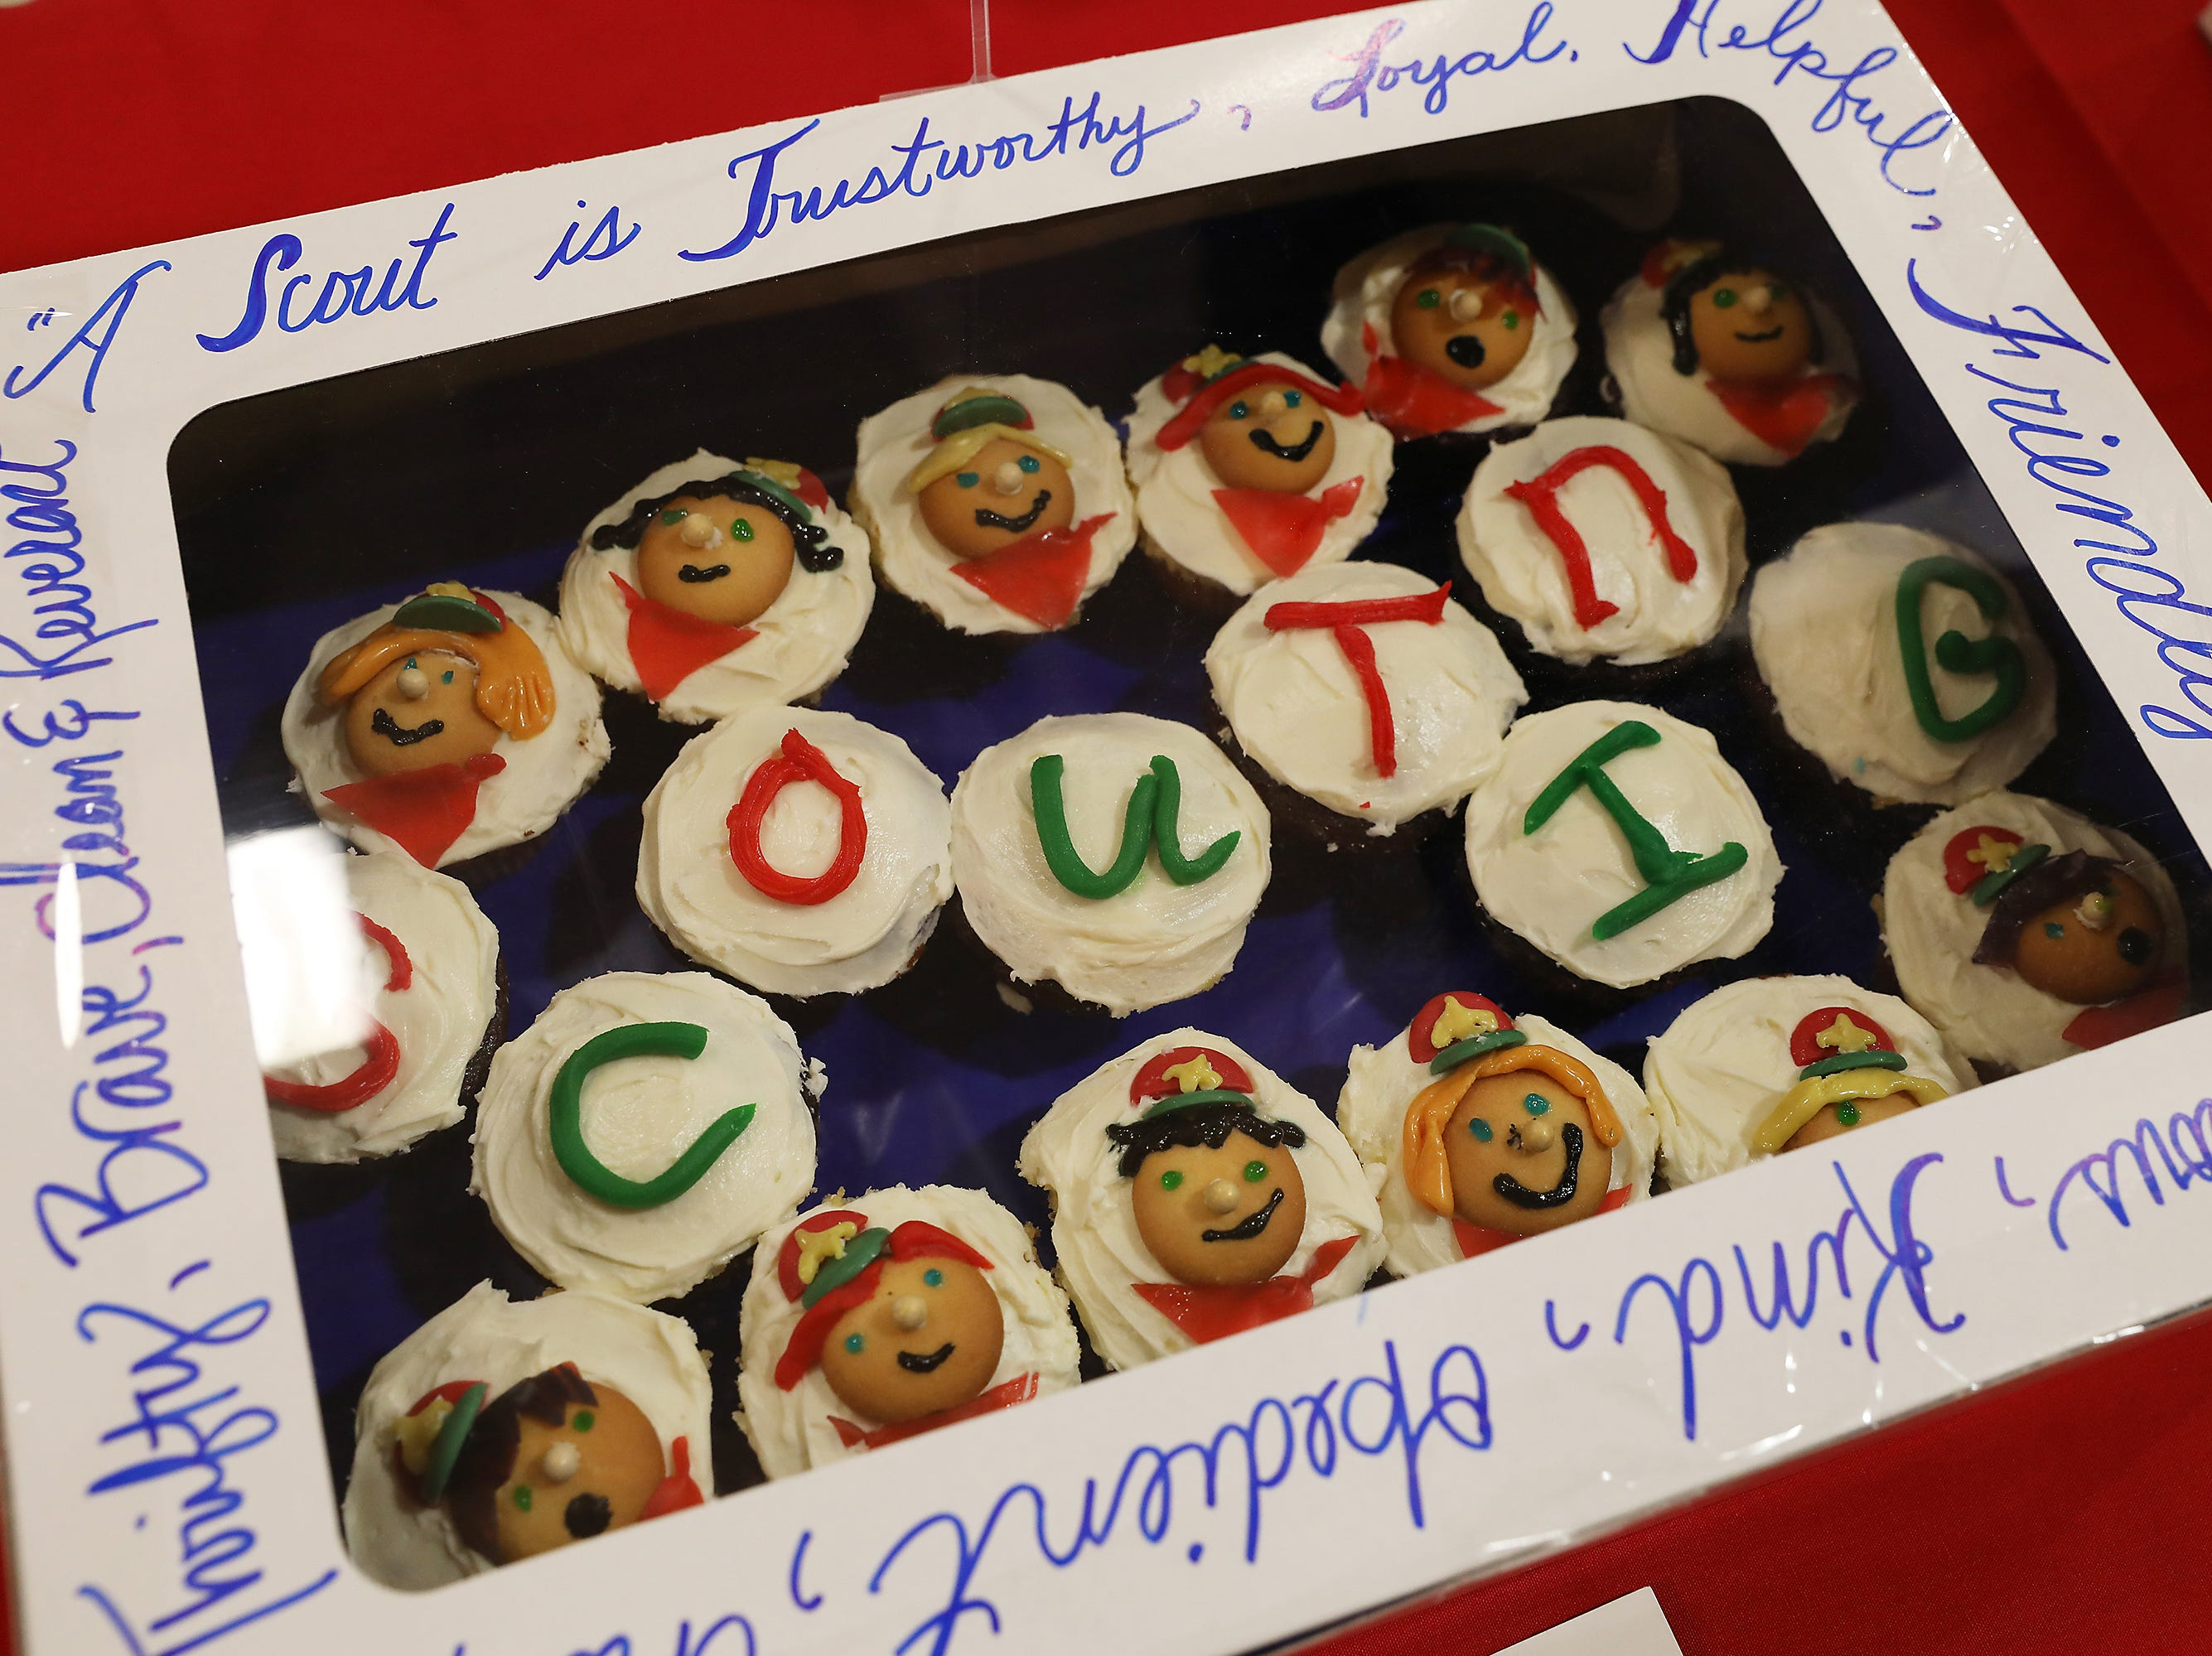 8:30 A.M. Friday cake 218 Boy Scout Troop 128 - $50 Tom's Ice Cream gift card